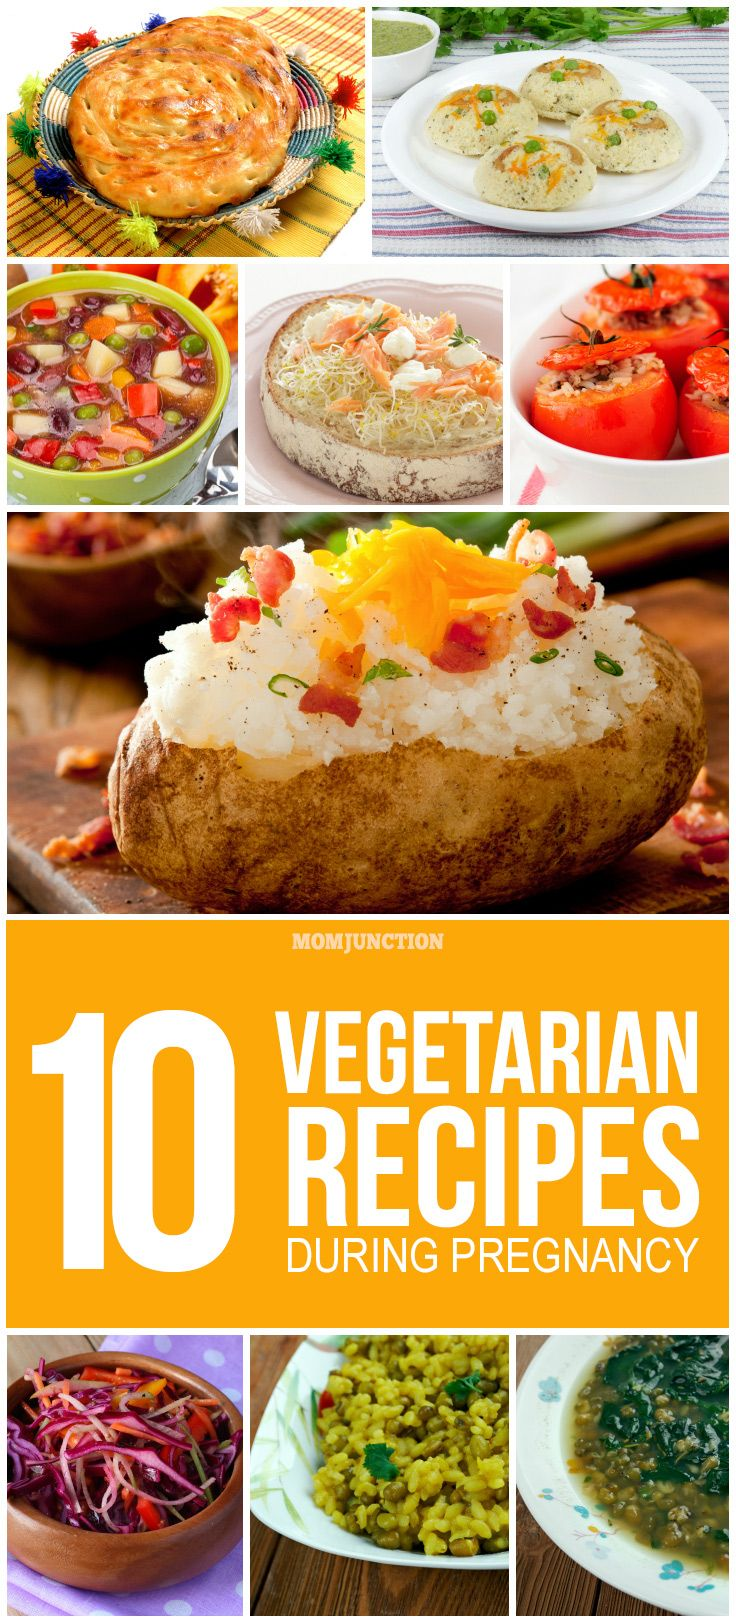 10 Healthy Vegetarian Recipes During Pregnancy: Are you pregnant and trying to start eating healthy? Do you feel you are running out of interesting recipe ideas? Are you looking for vegetarian recipes that will be good especially during #pregnancy ?we recommend you speak to your doctor about the ingredients first.